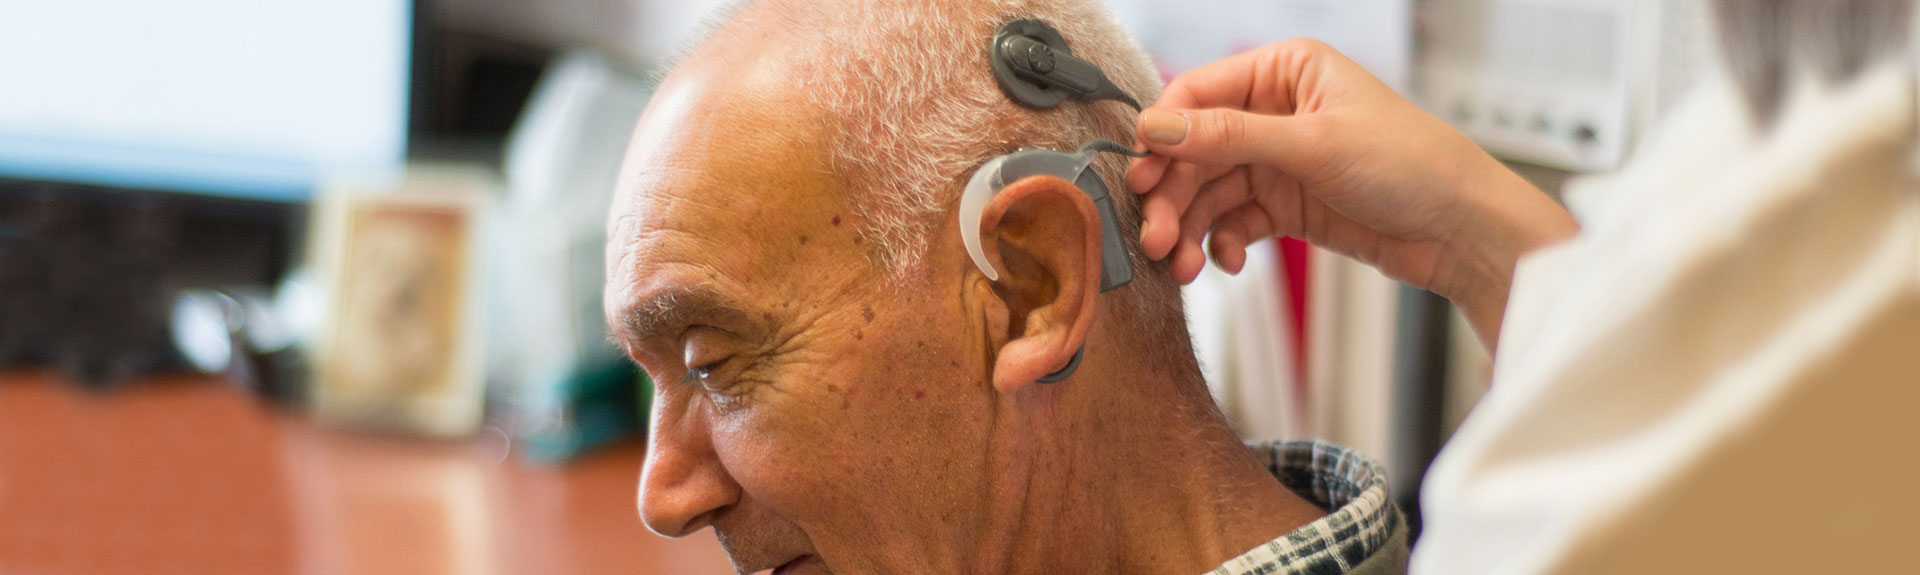 Image of male with Hearing aid device